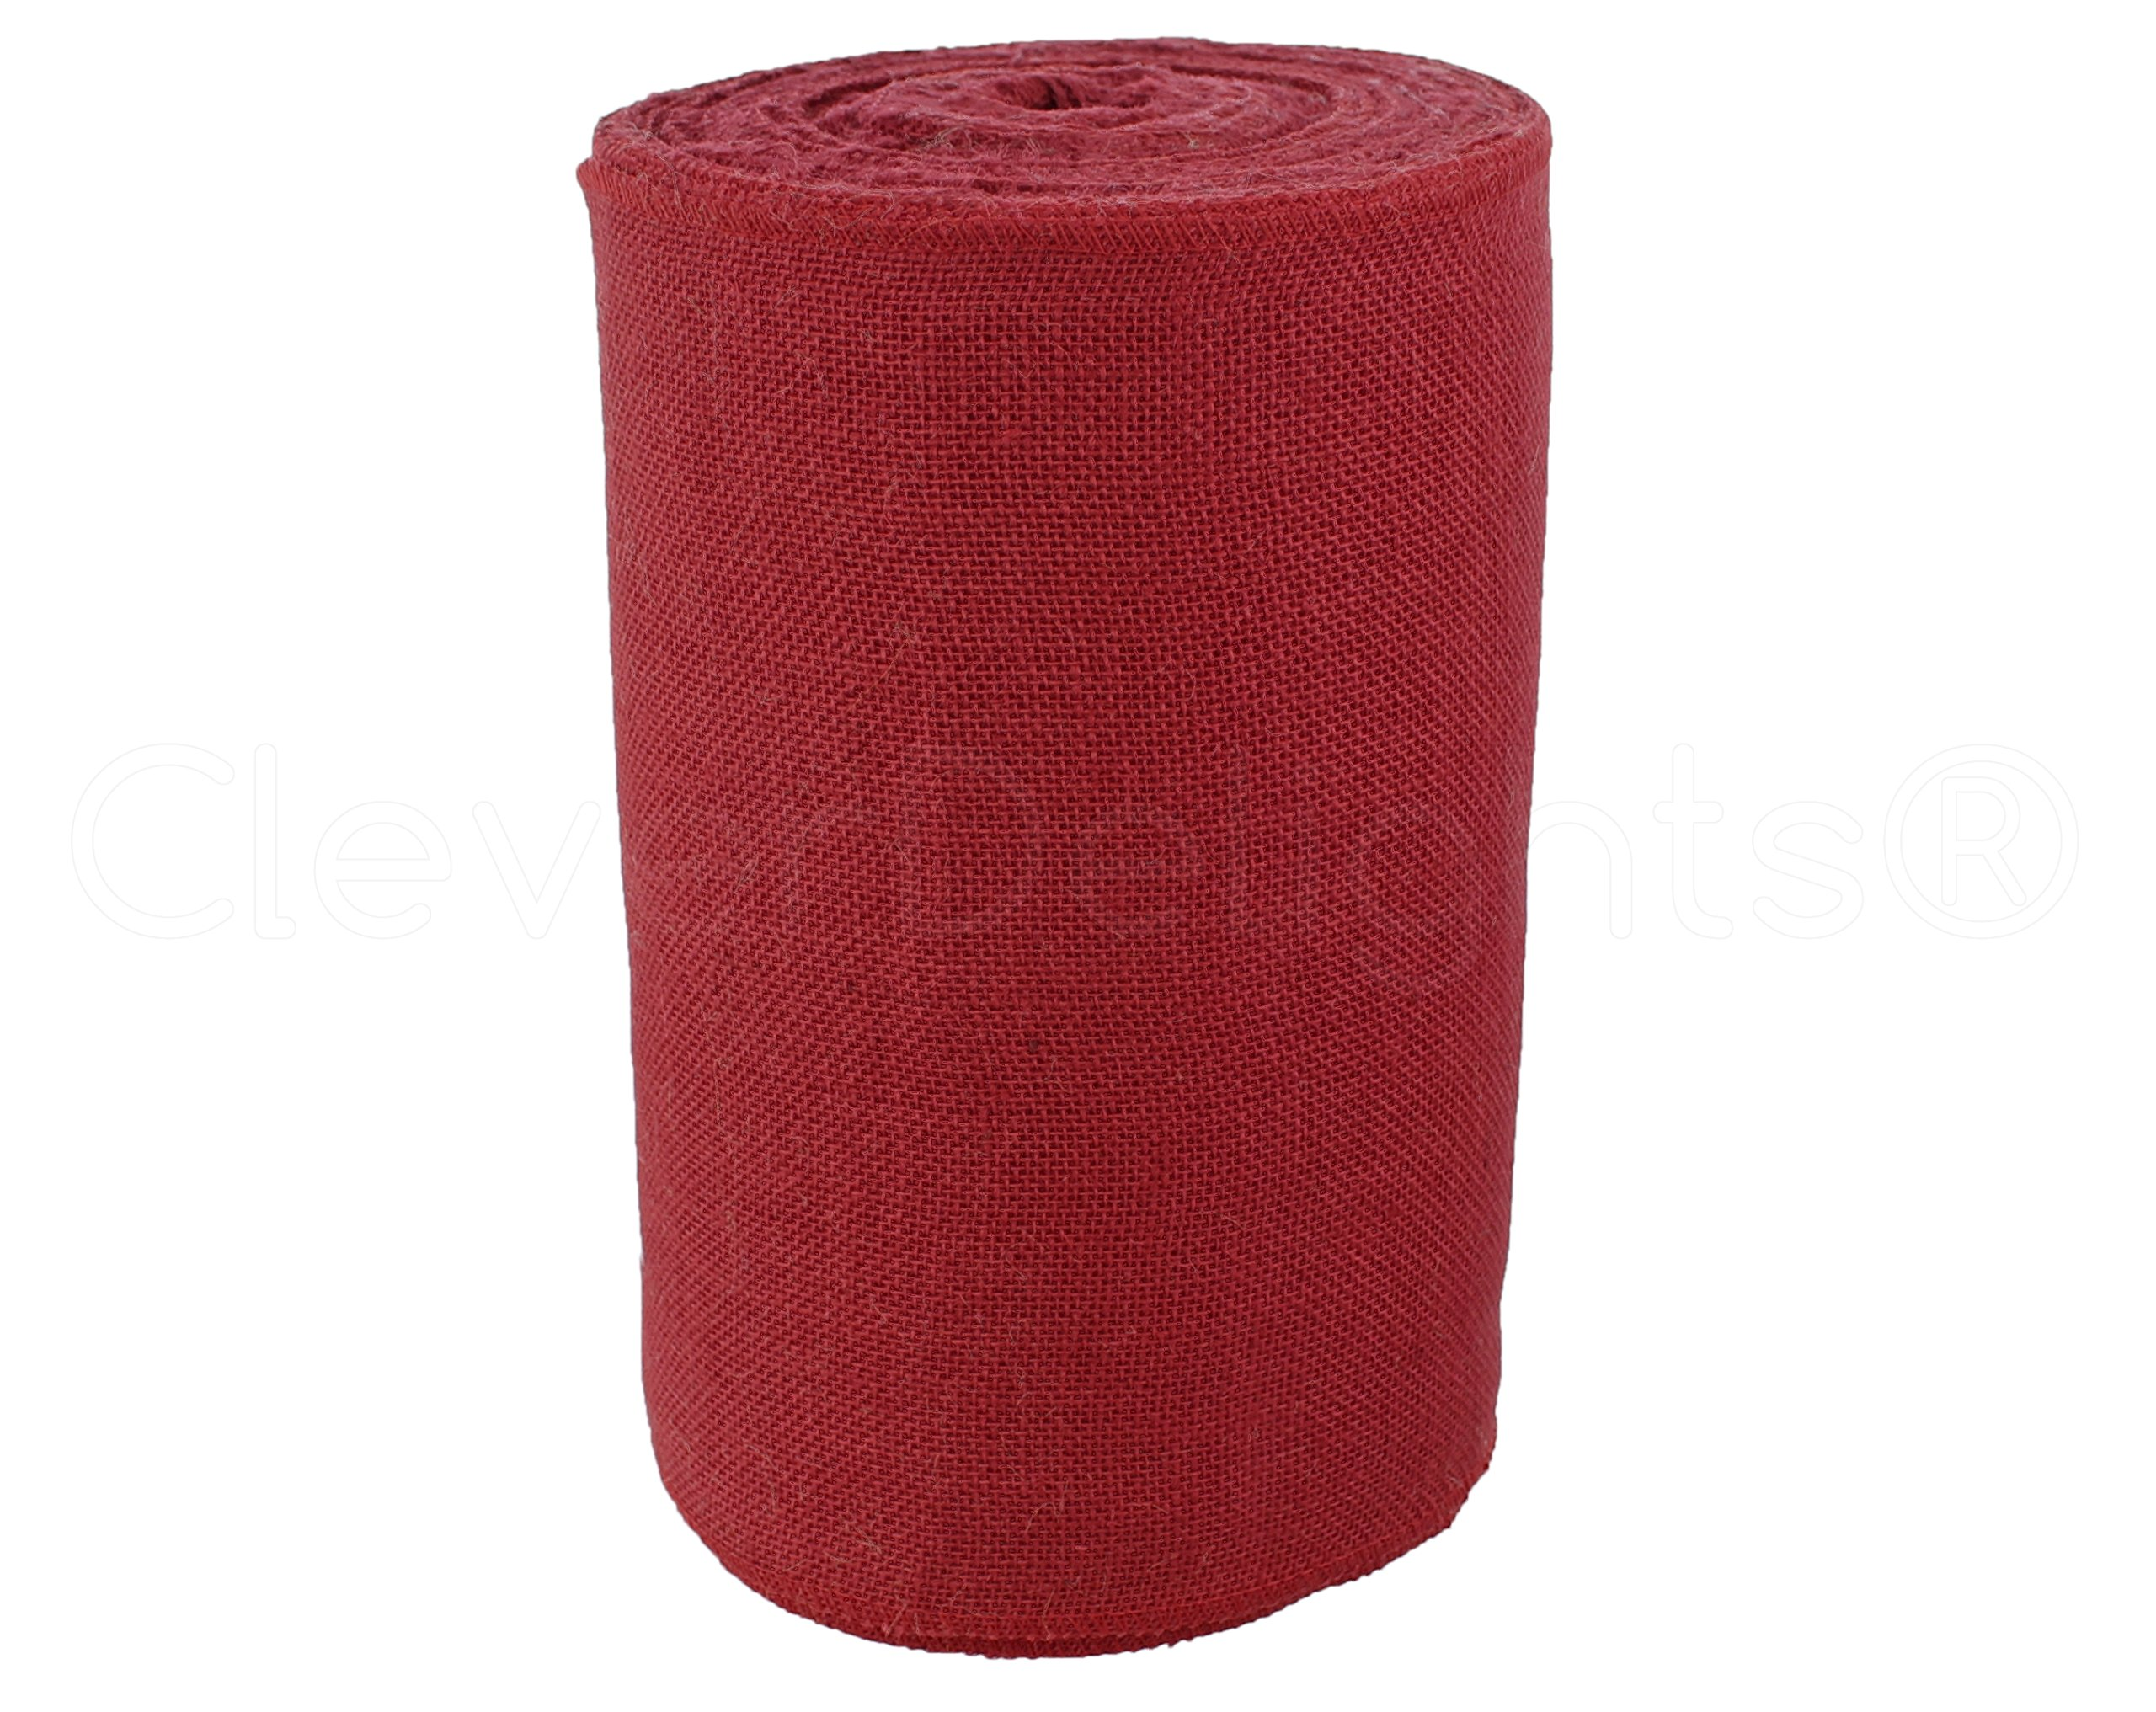 CleverDelights 12'' Premium Red Burlap Roll - 50 Yards - No-Fray Finished Edges - Natural Jute Burlap Fabric by CleverDelights (Image #2)